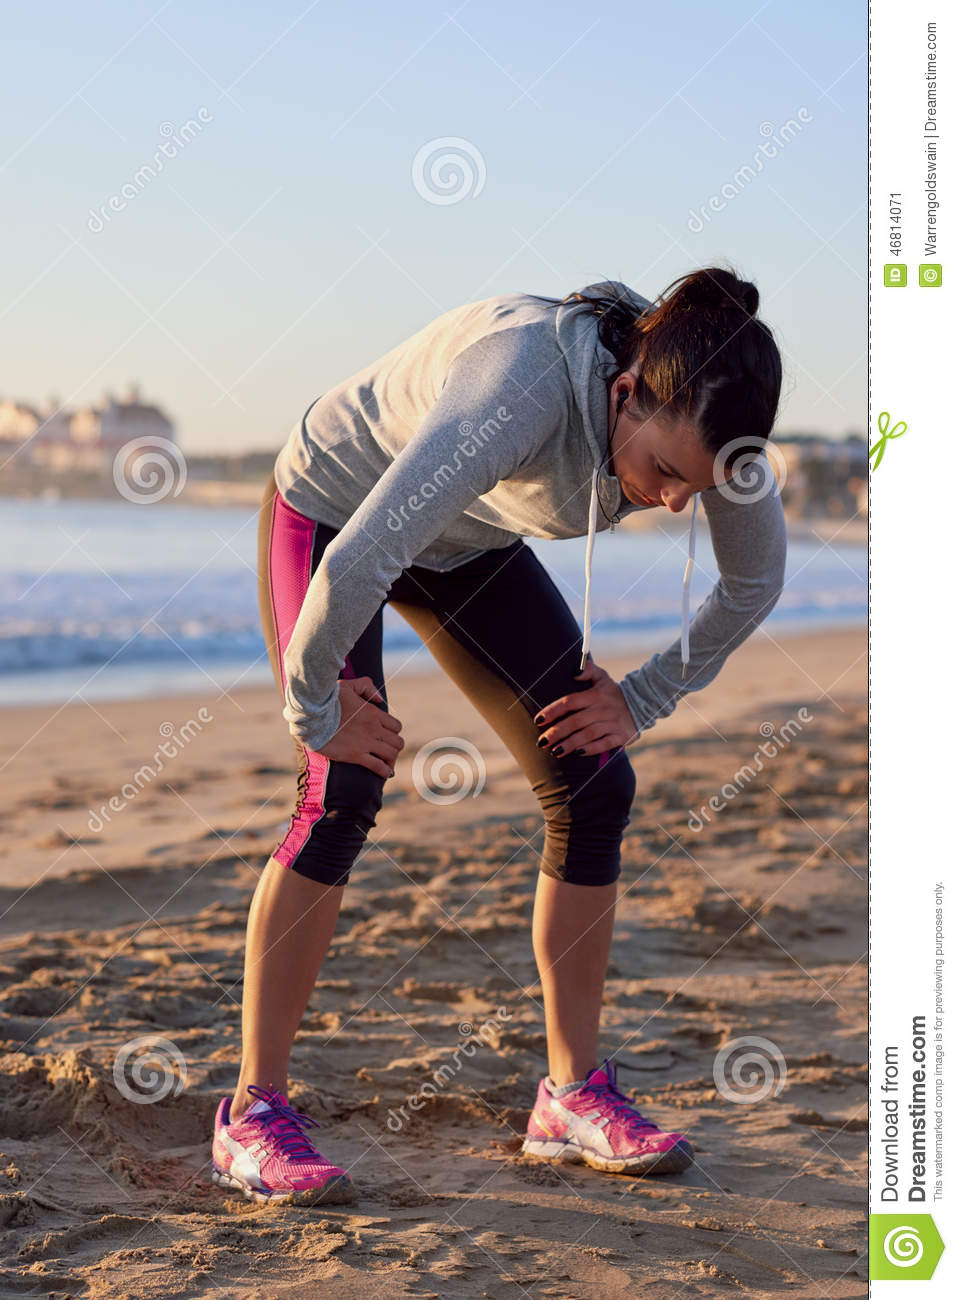 tired runner stock image image of athletic sweat